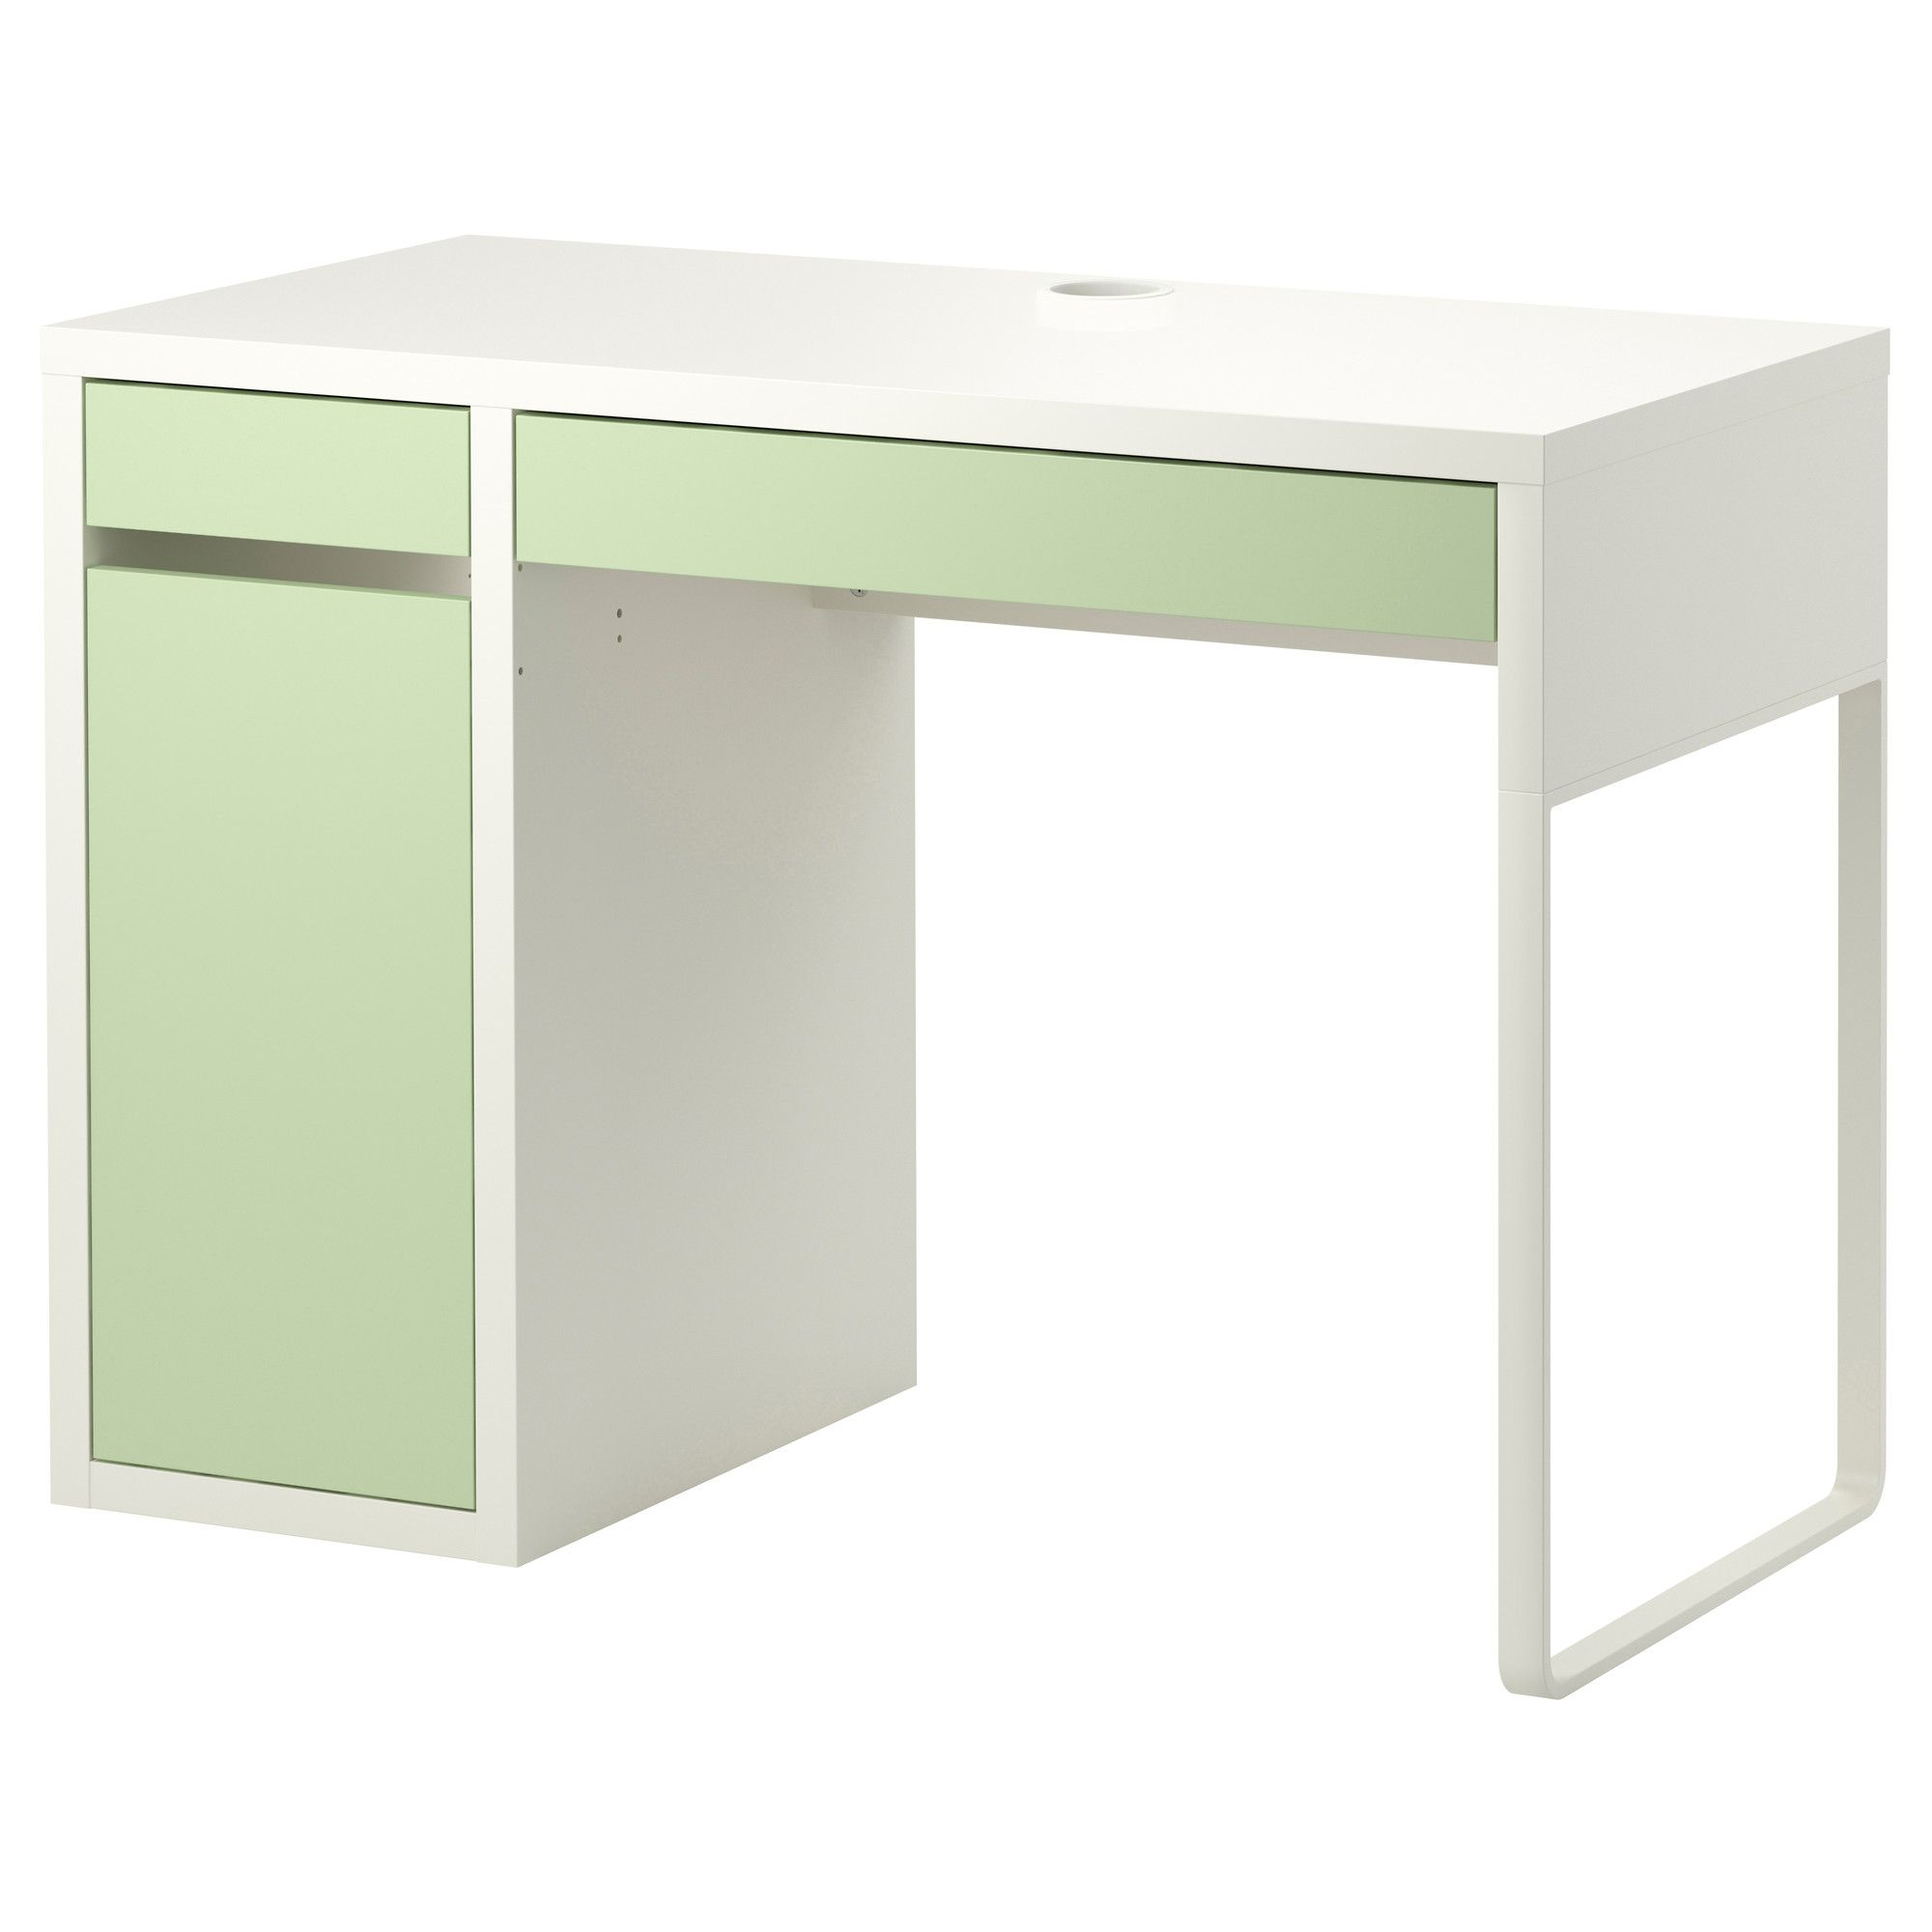 bureau ikea blanc micke bureau blanc ikea malm bureau blanc ikea grand bureau blanc ikea. Black Bedroom Furniture Sets. Home Design Ideas